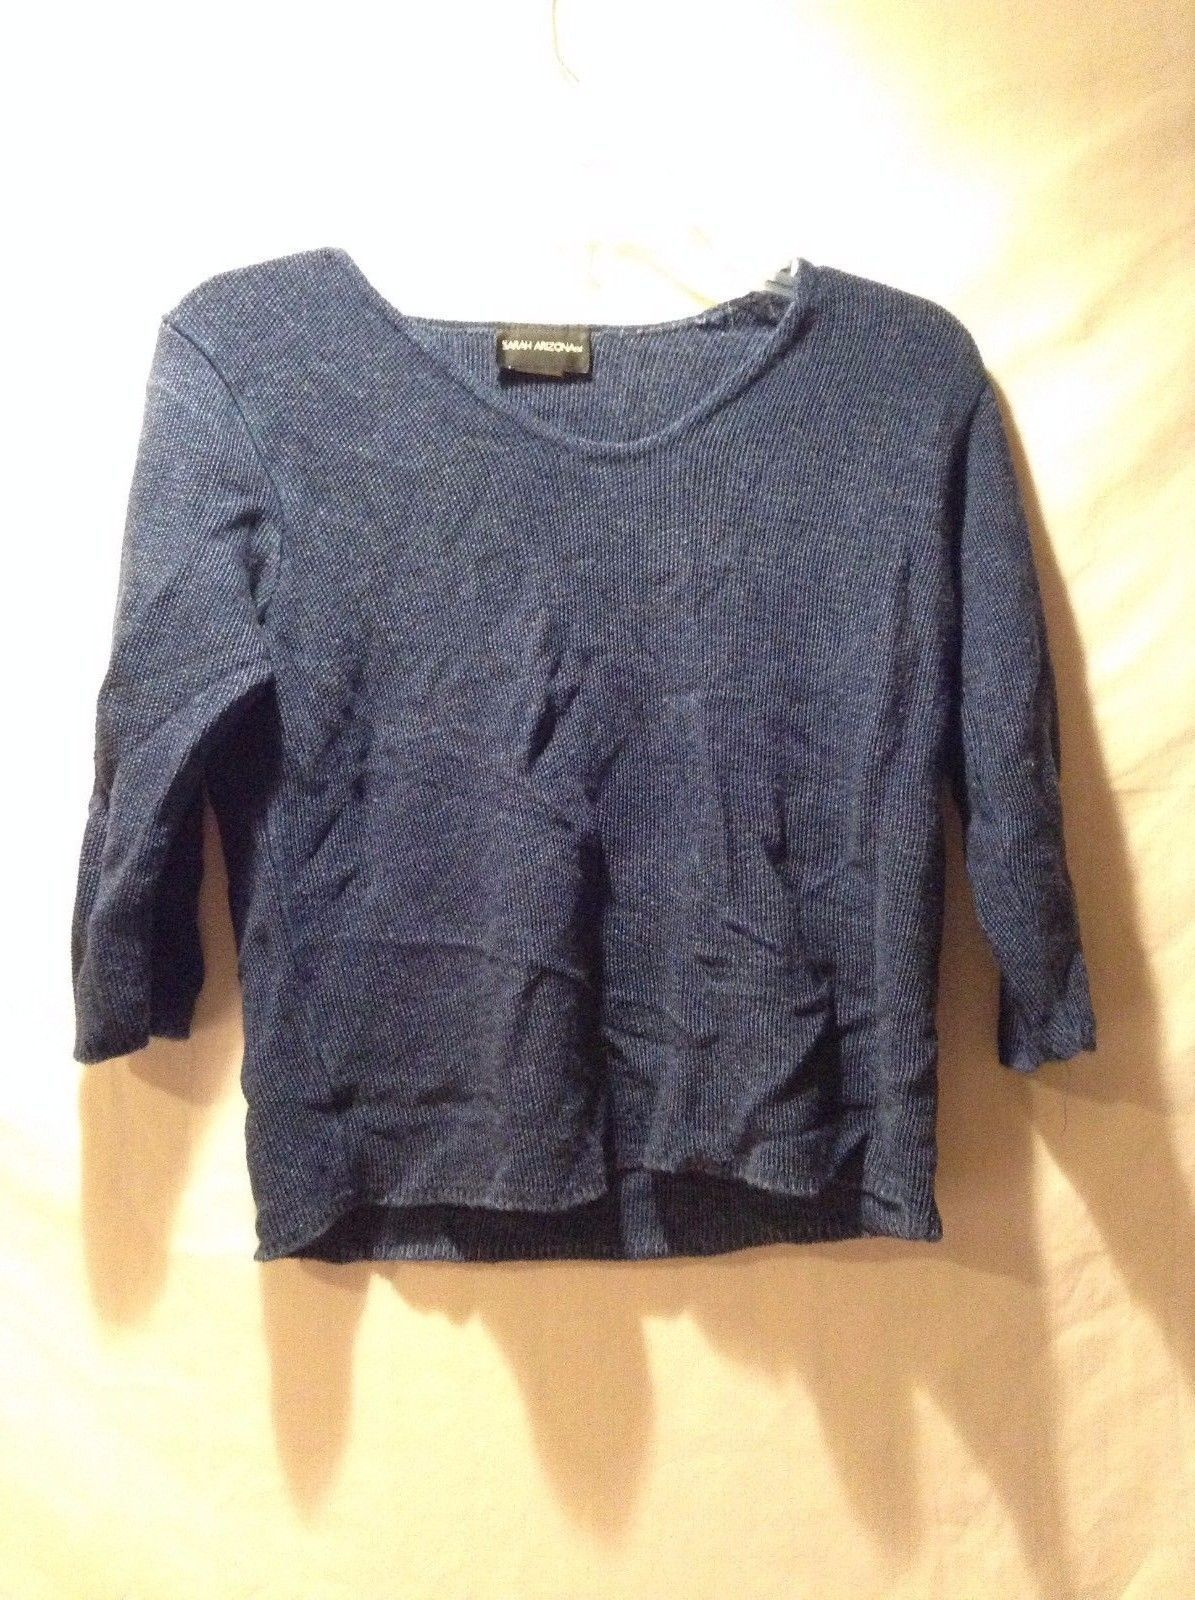 Women's Sarah Arizona Top 3/4 Sleeve Shirt Dark Blue Size Medium 100% Rayon